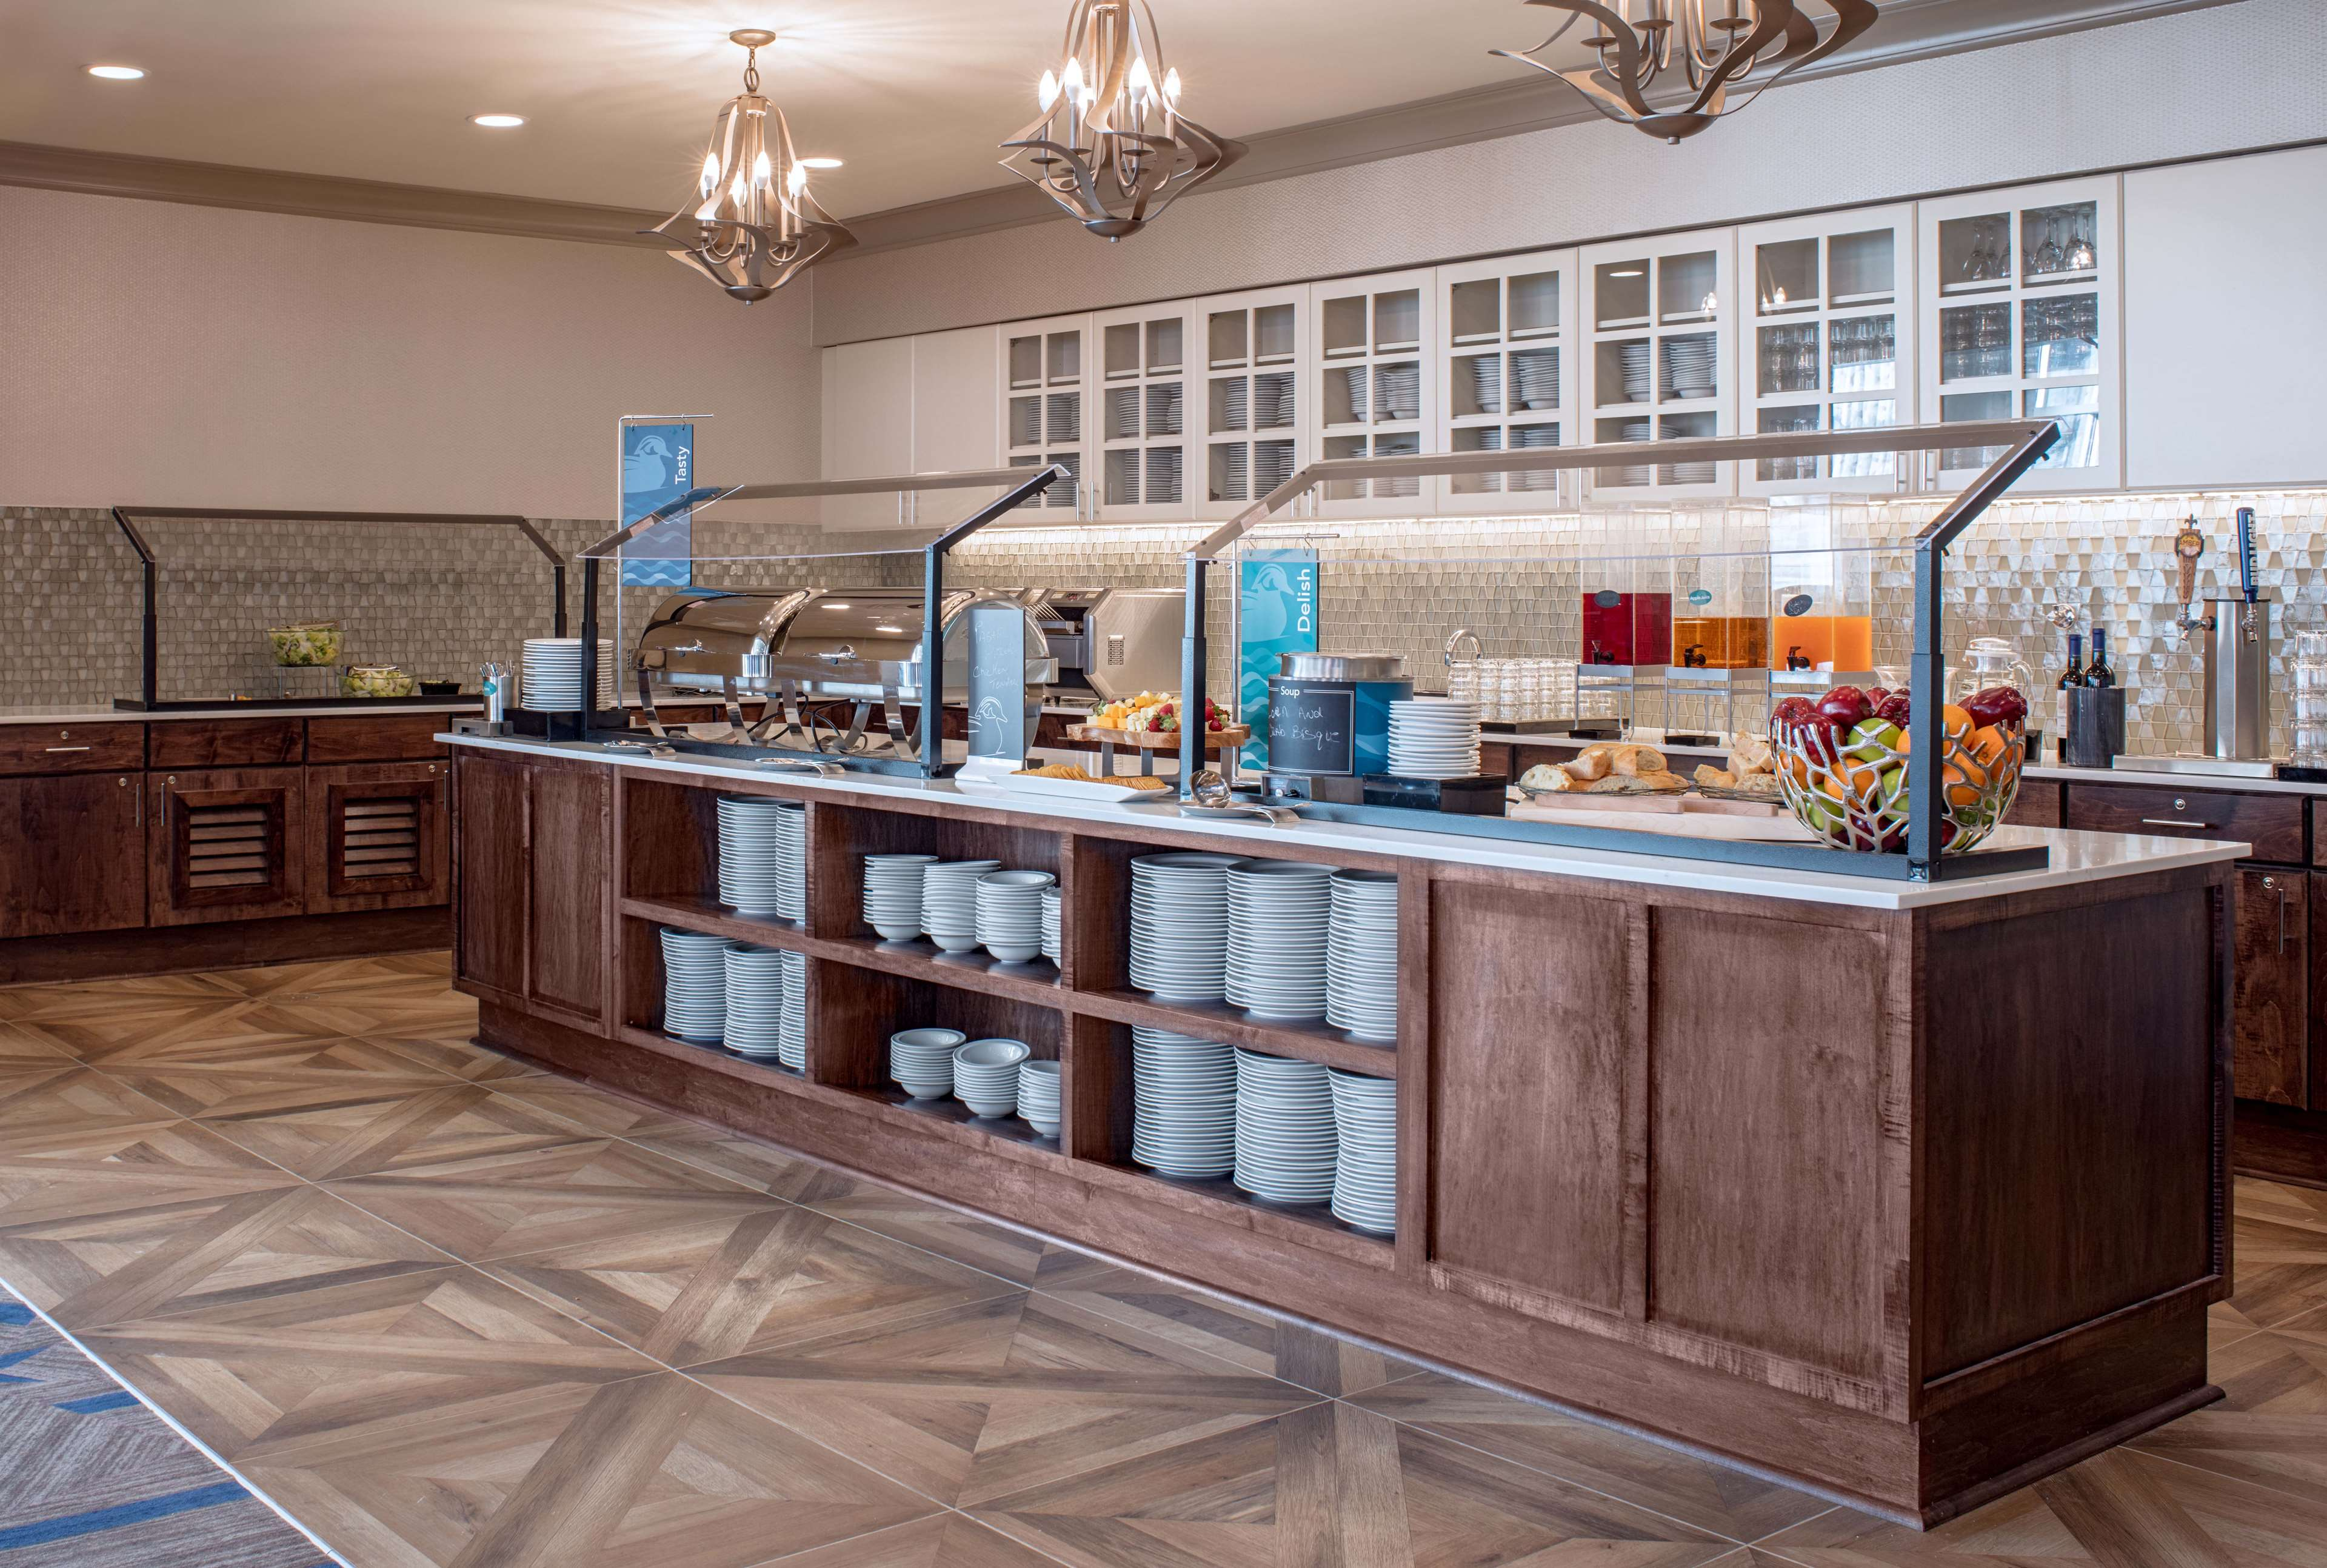 Homewood Suites by Hilton New Orleans French Quarter image 57